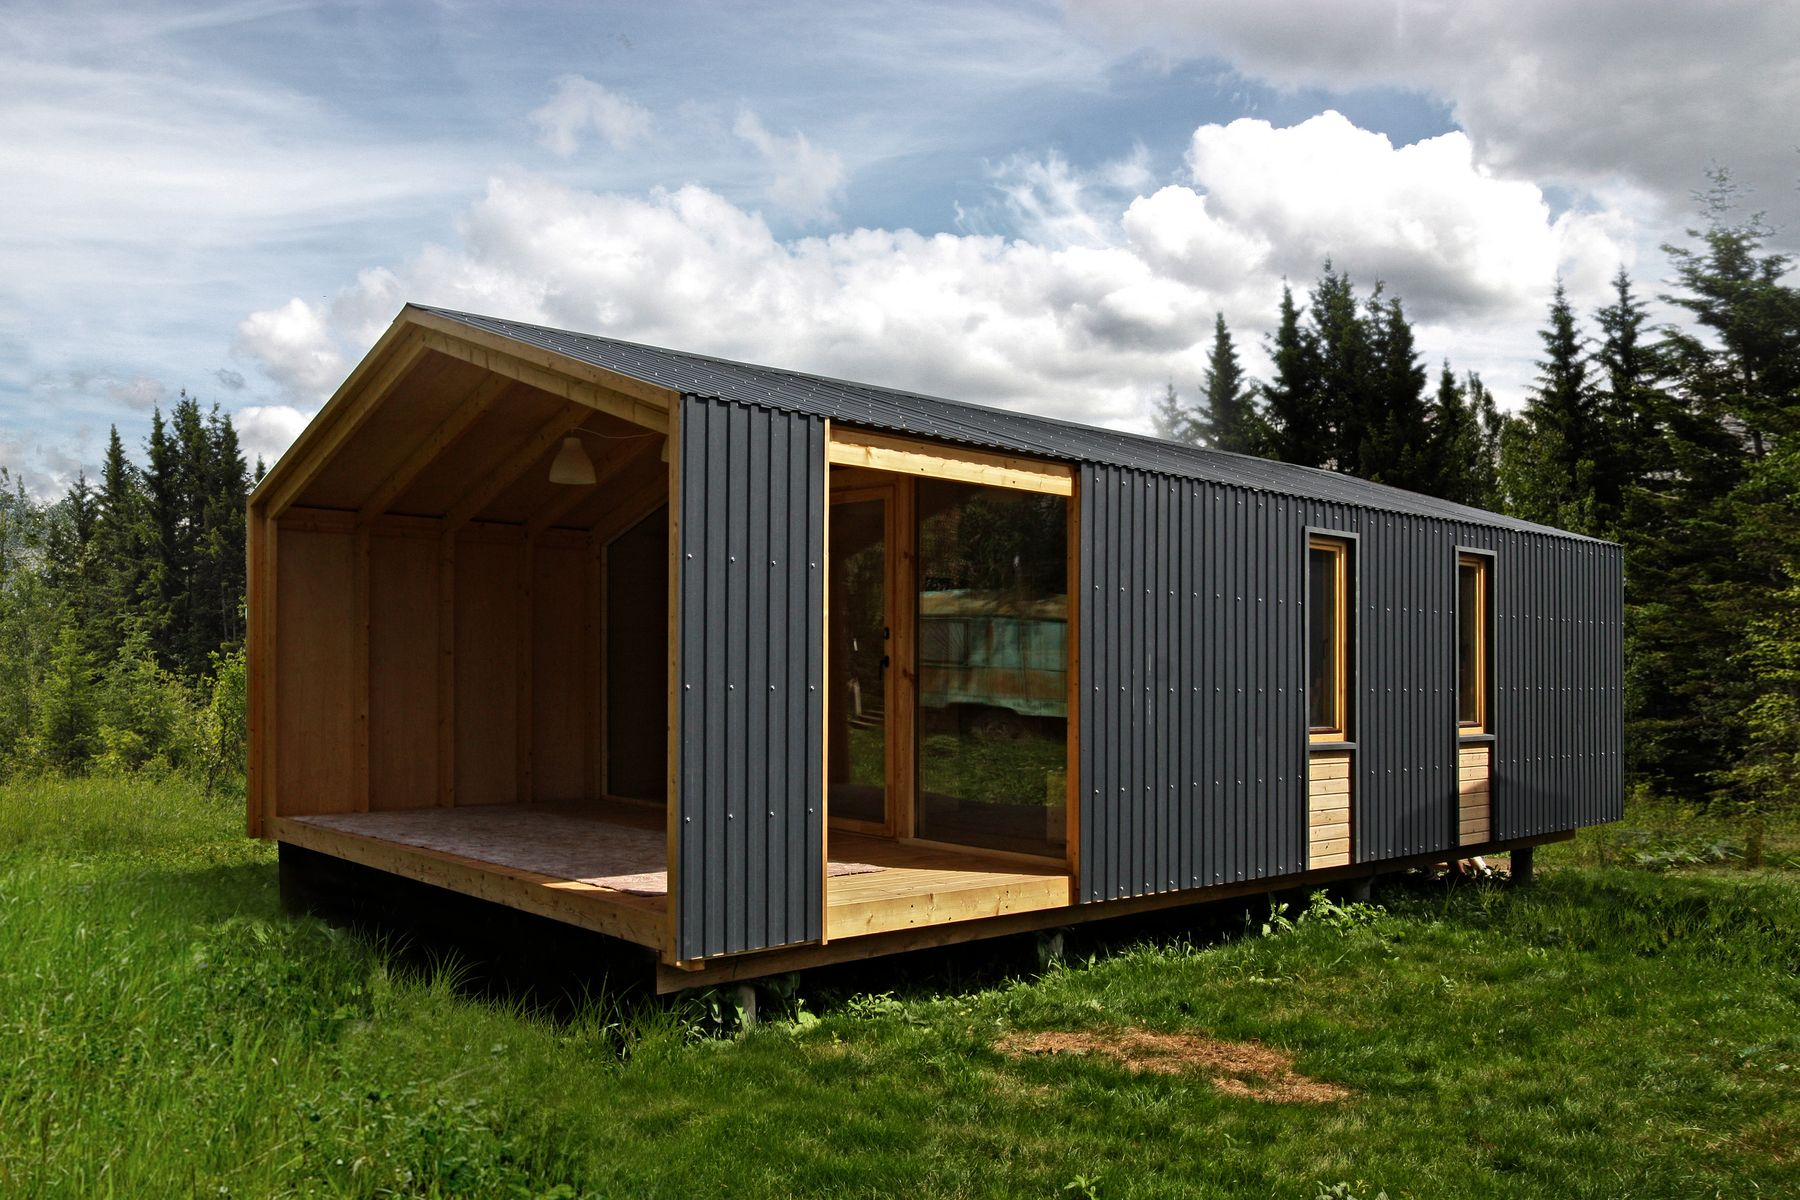 Gallery dubldom a modular tiny house from russia bio for Small house architects